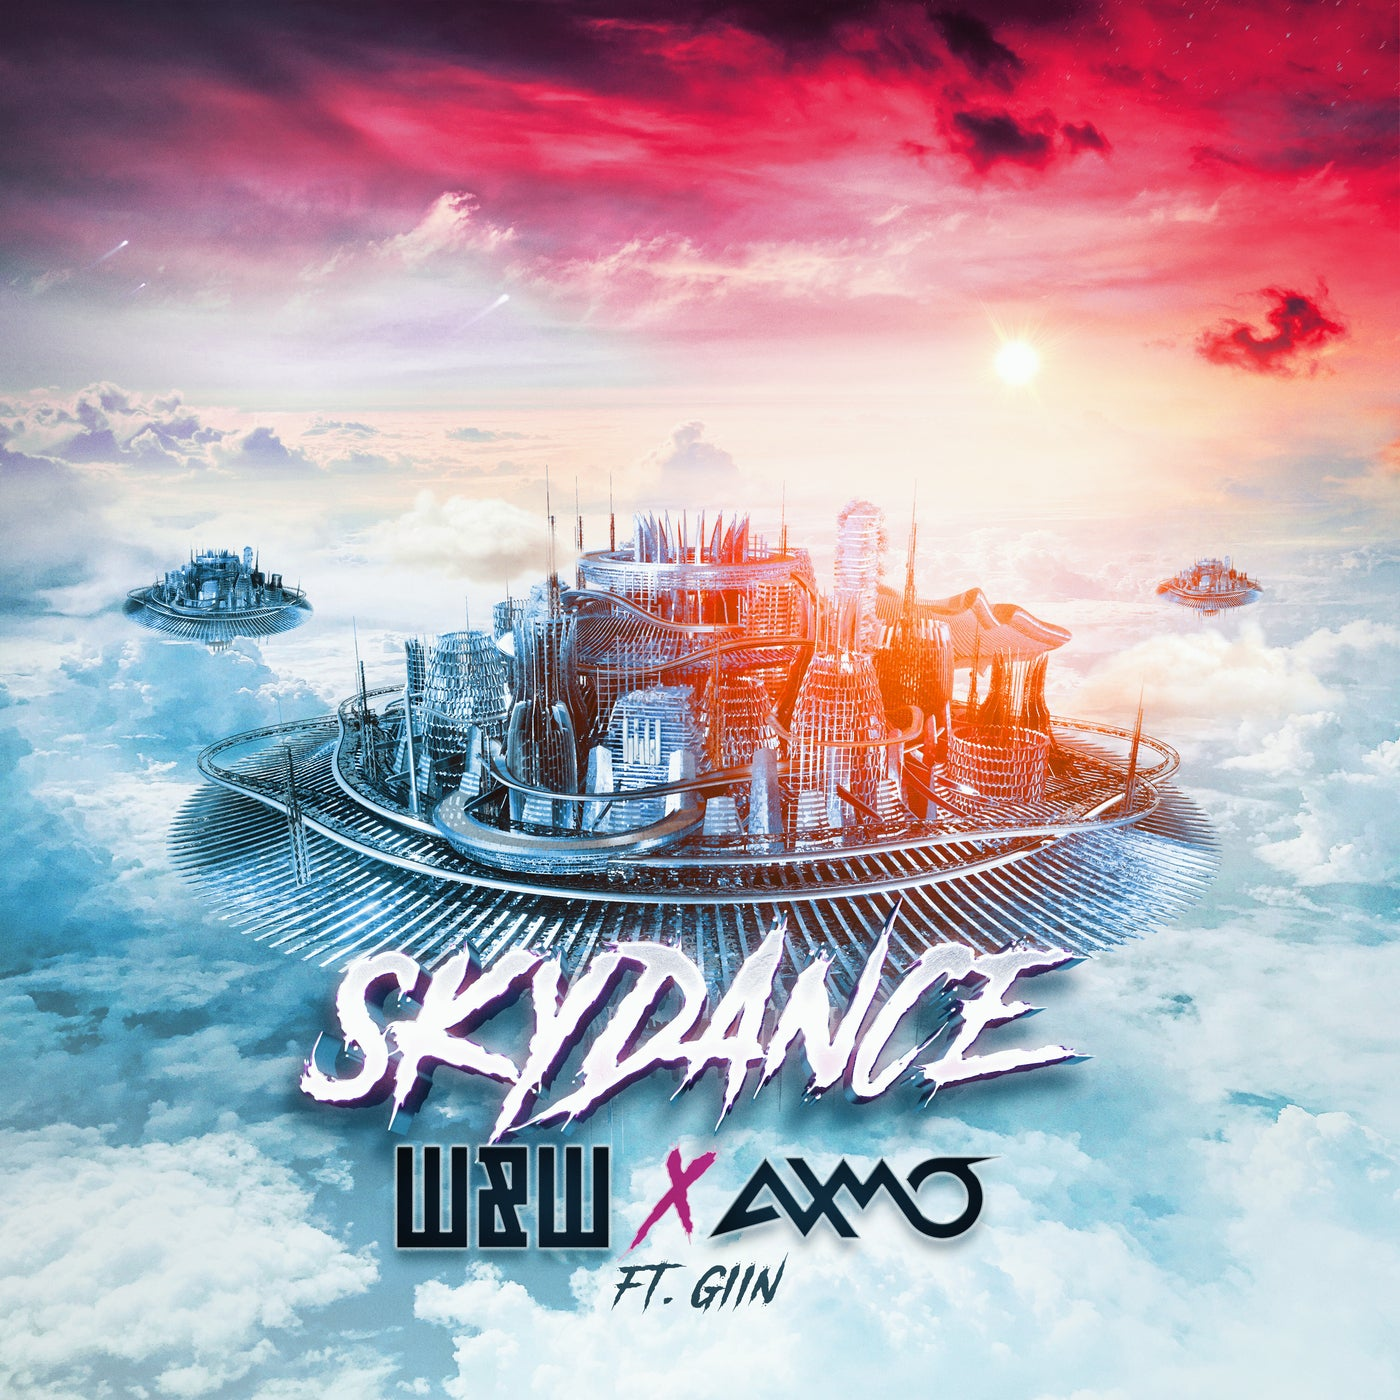 Skydance (Extended Mix)